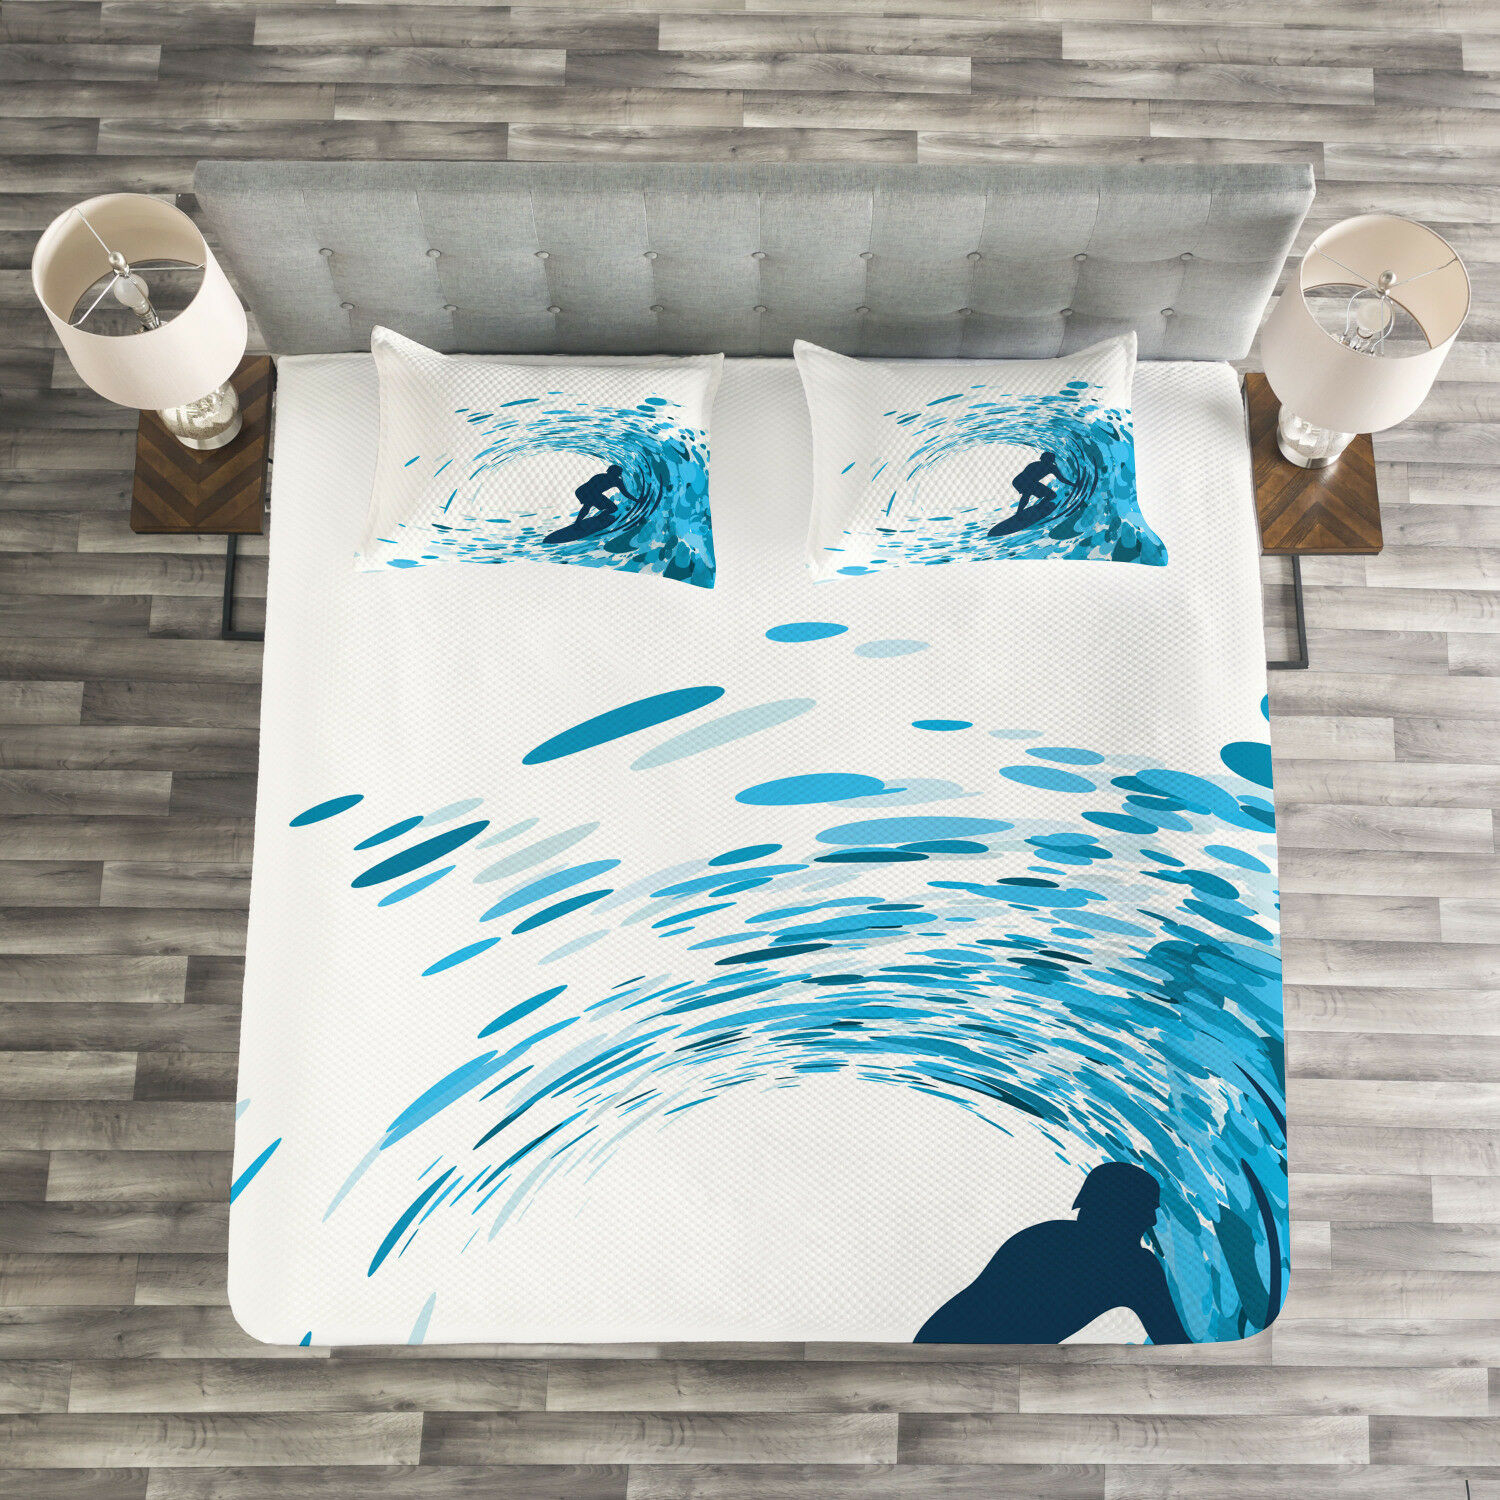 Ride The Wave Quilted Bedspread & Pillow Shams Set, Huge Wave Athlete Print